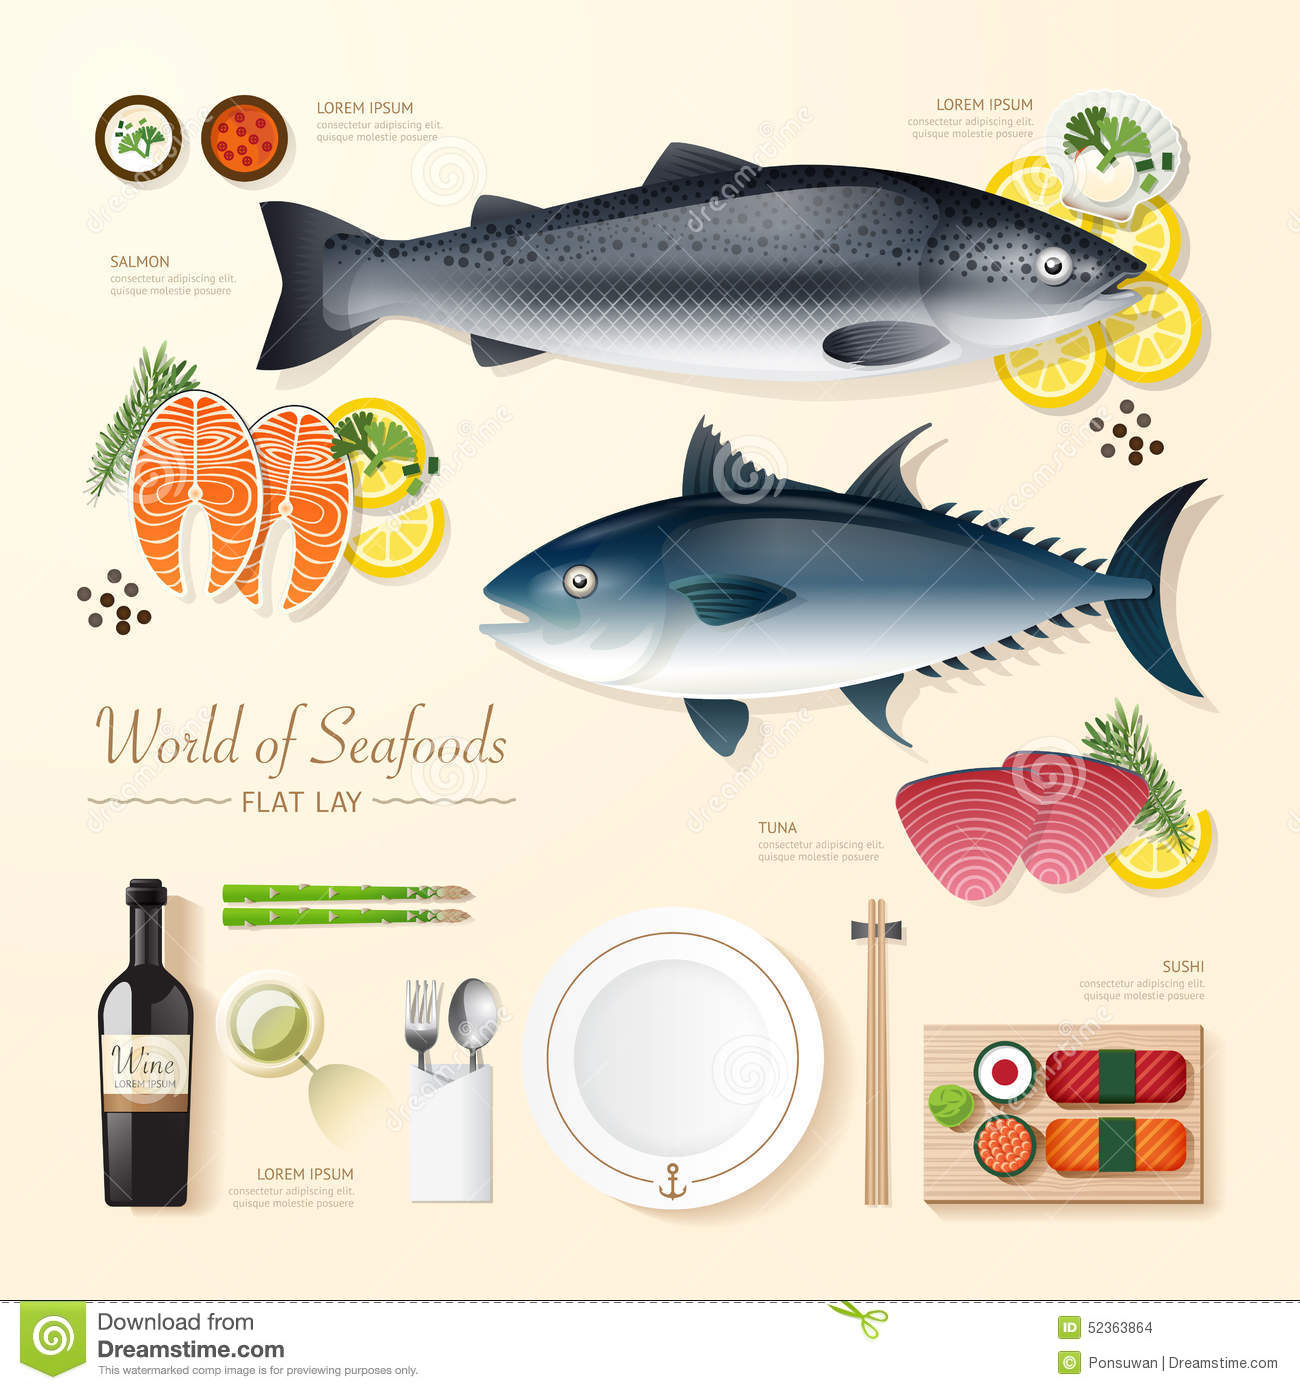 About seafood business plan